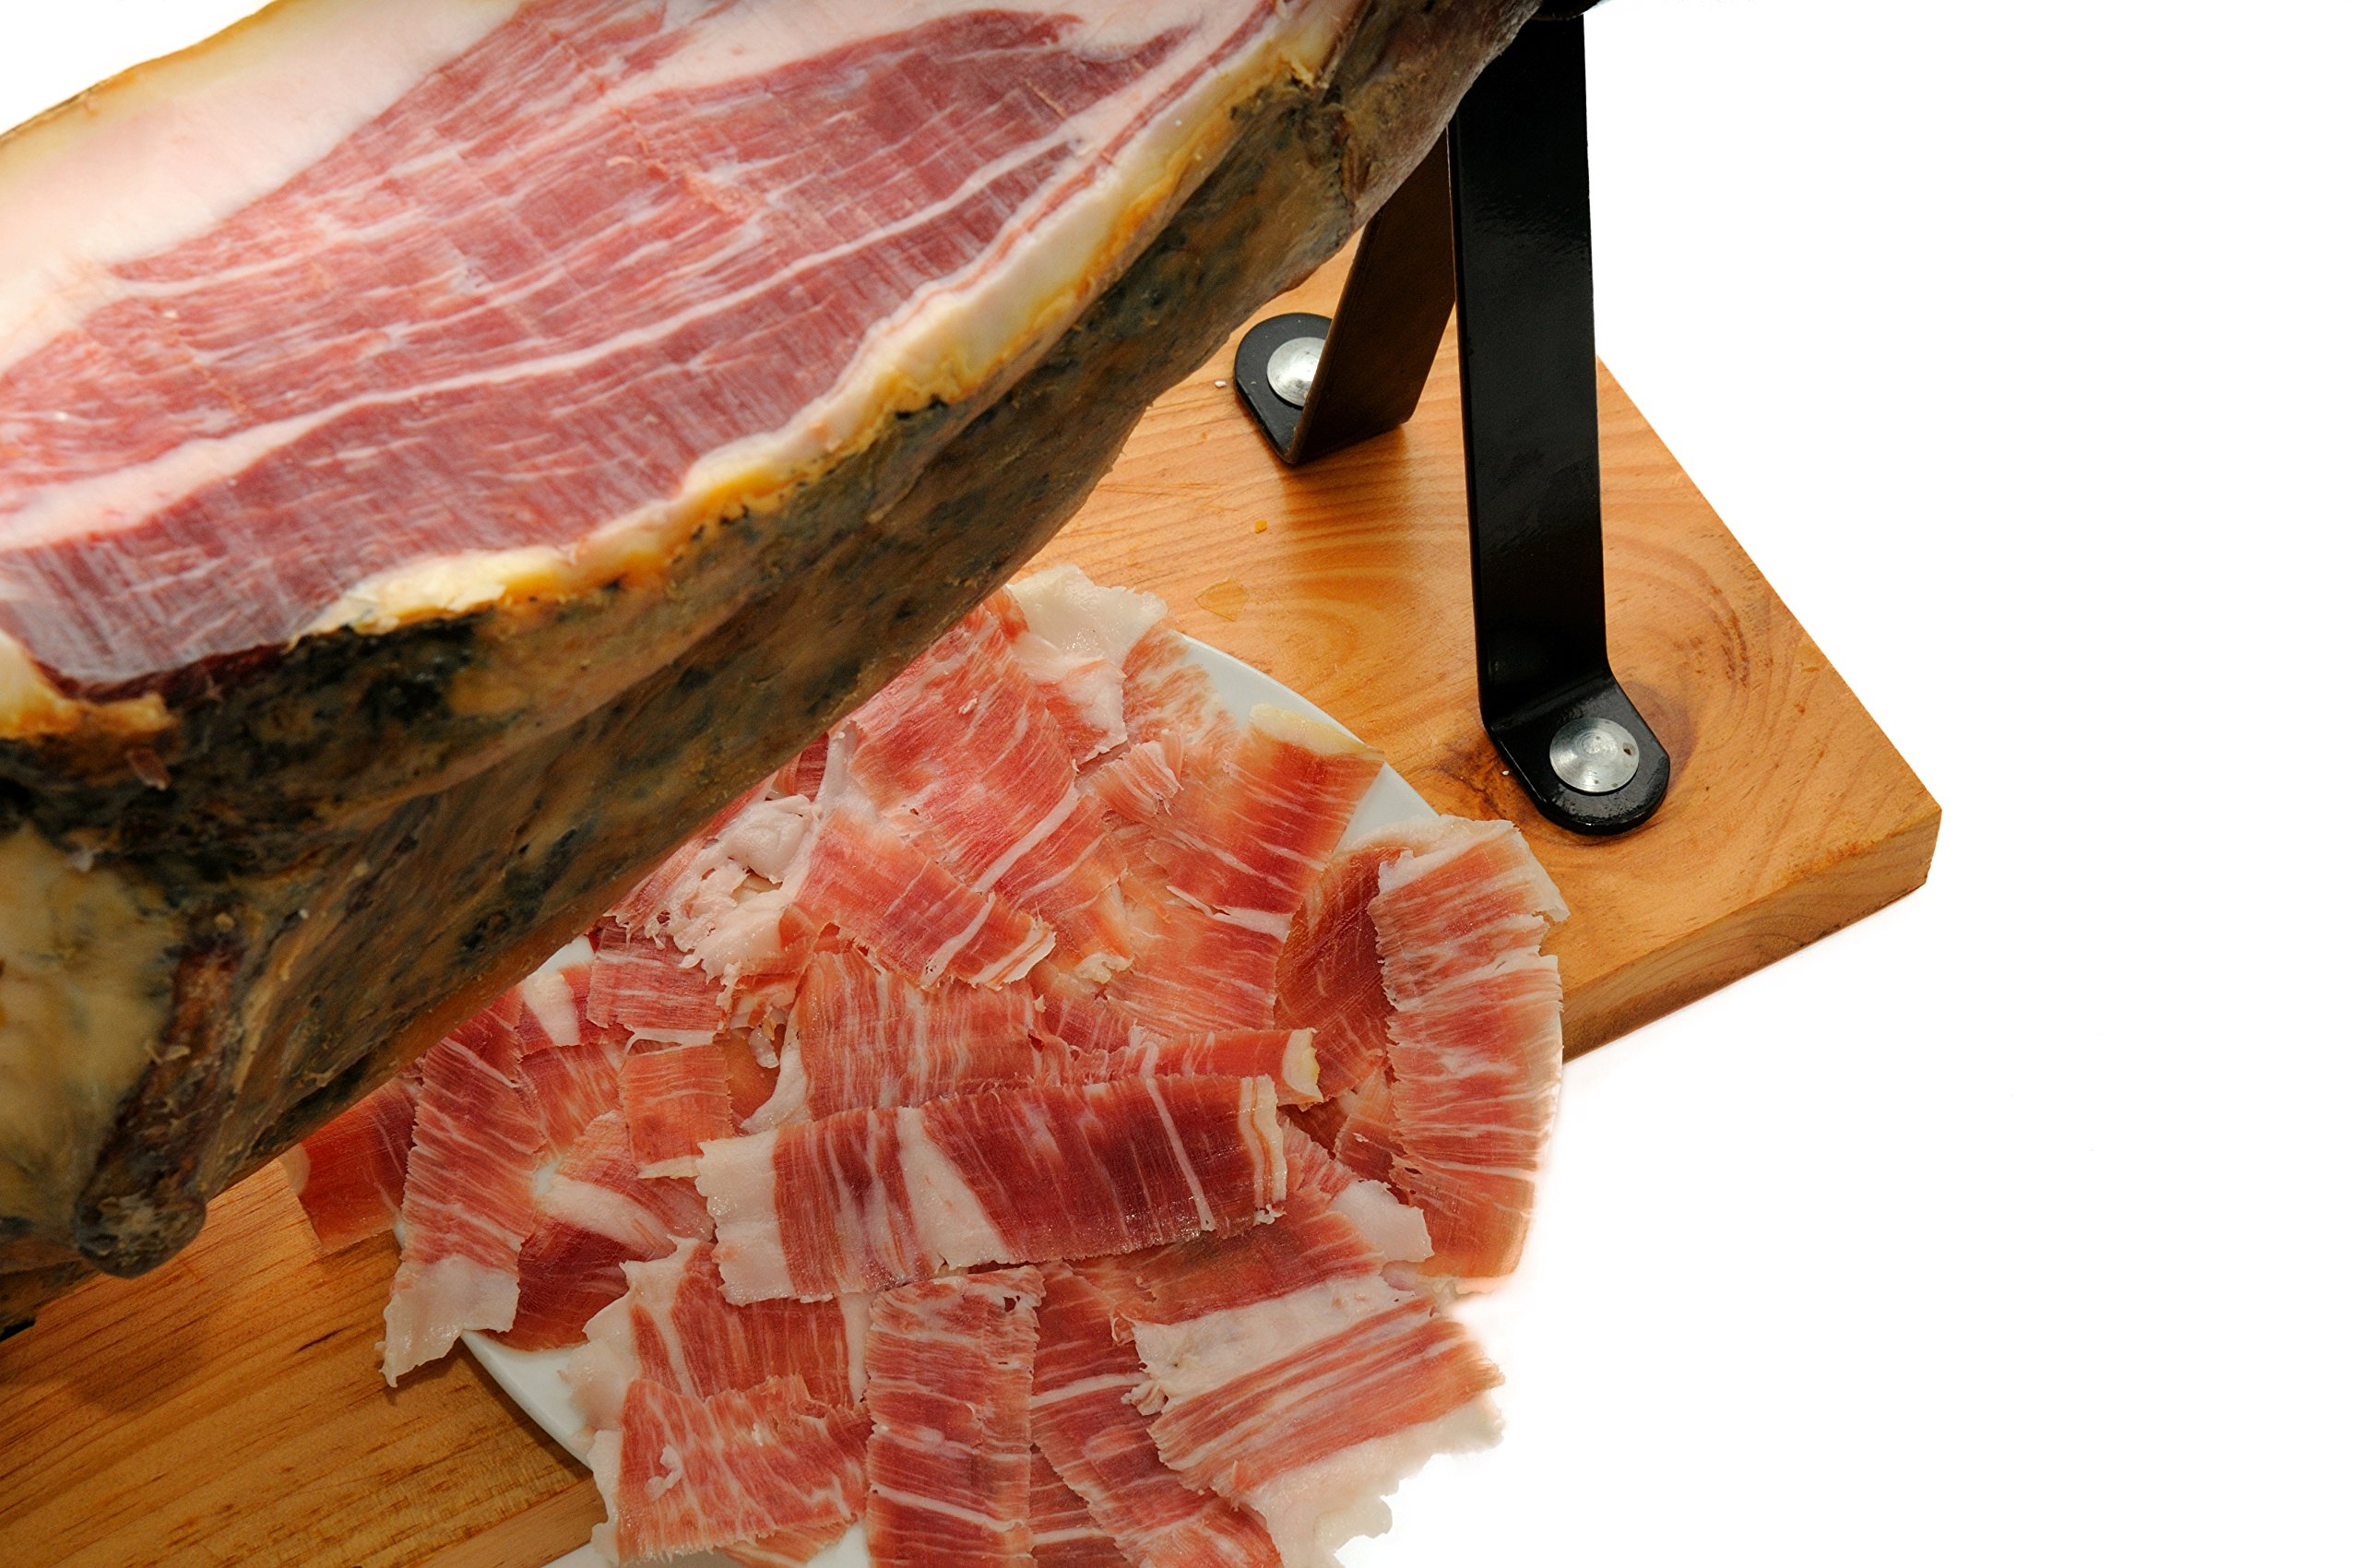 Iberico Ham, Hand-Carved, Three 3 oz Packages by Cinco Jotas (5J) (Image #2)